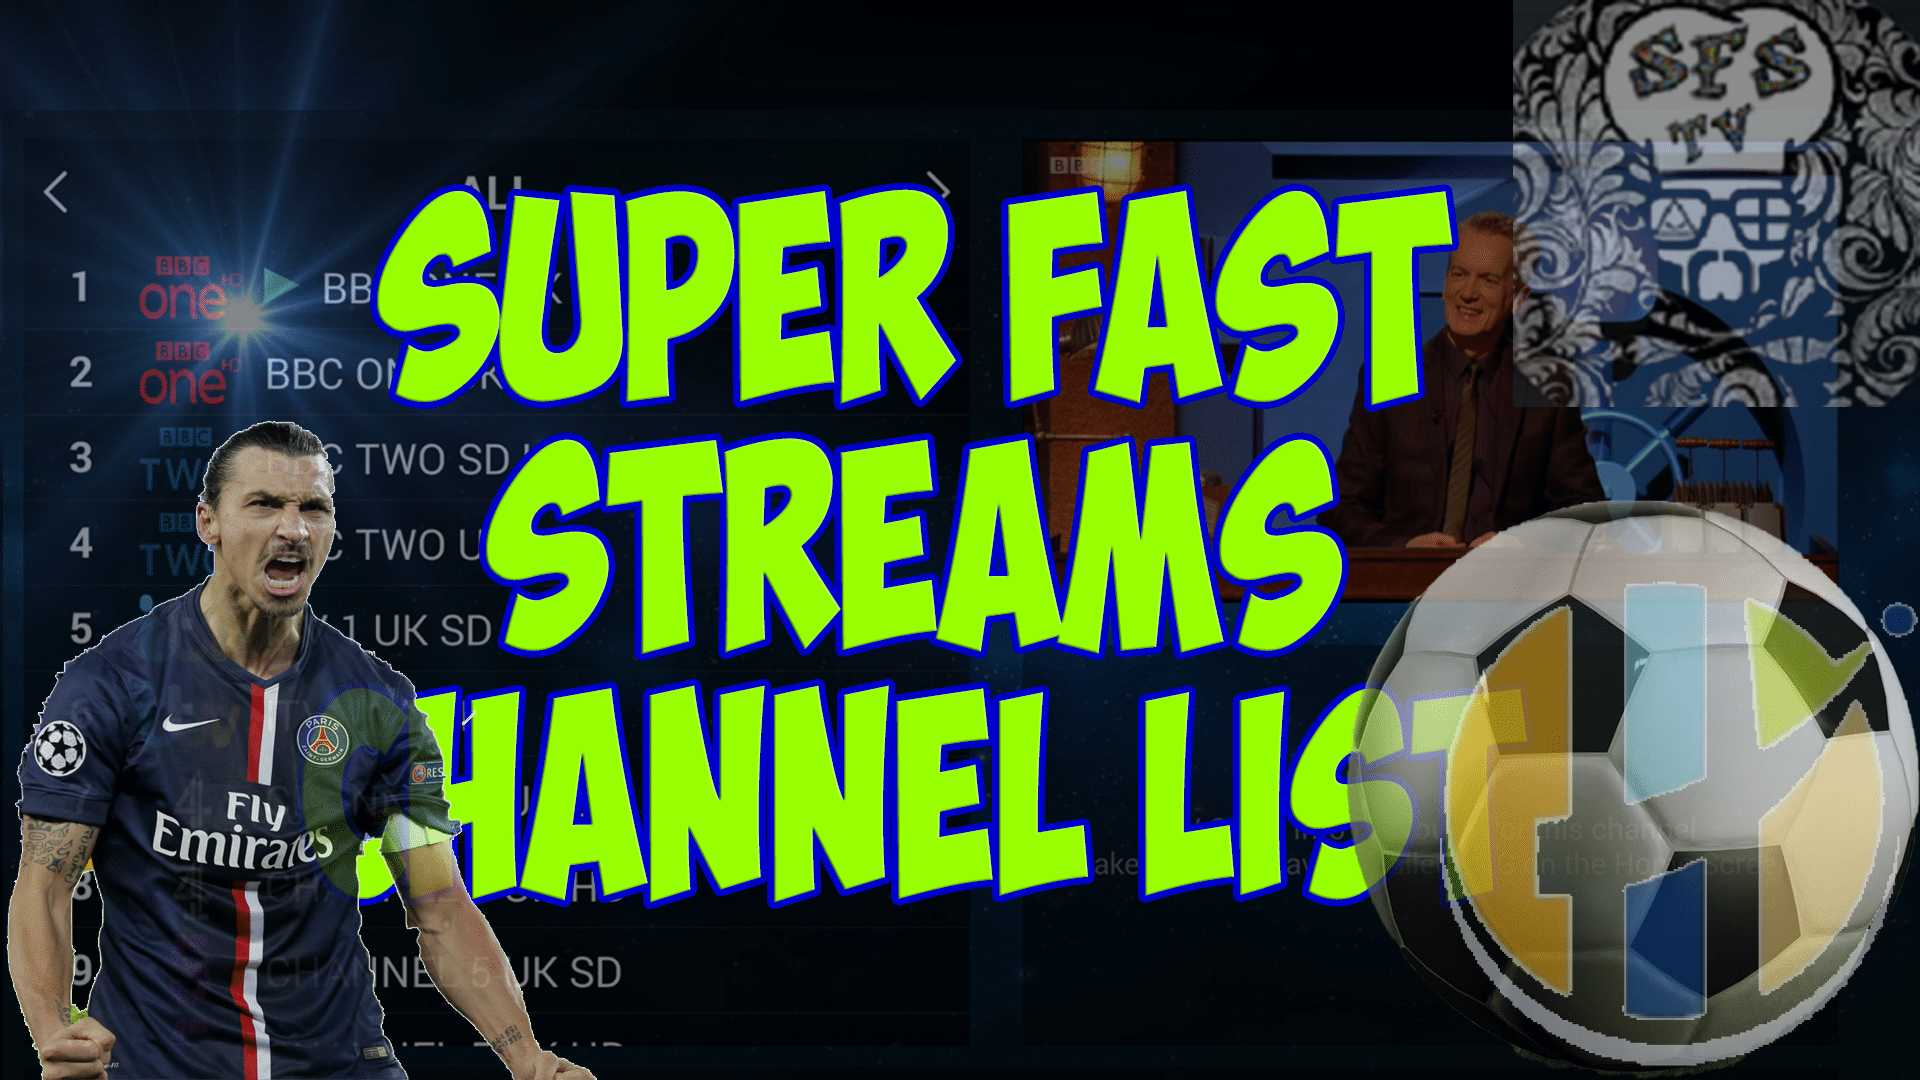 SuperFast Streams IPTV Channel list 03/10/2018 - Husham com IPTV